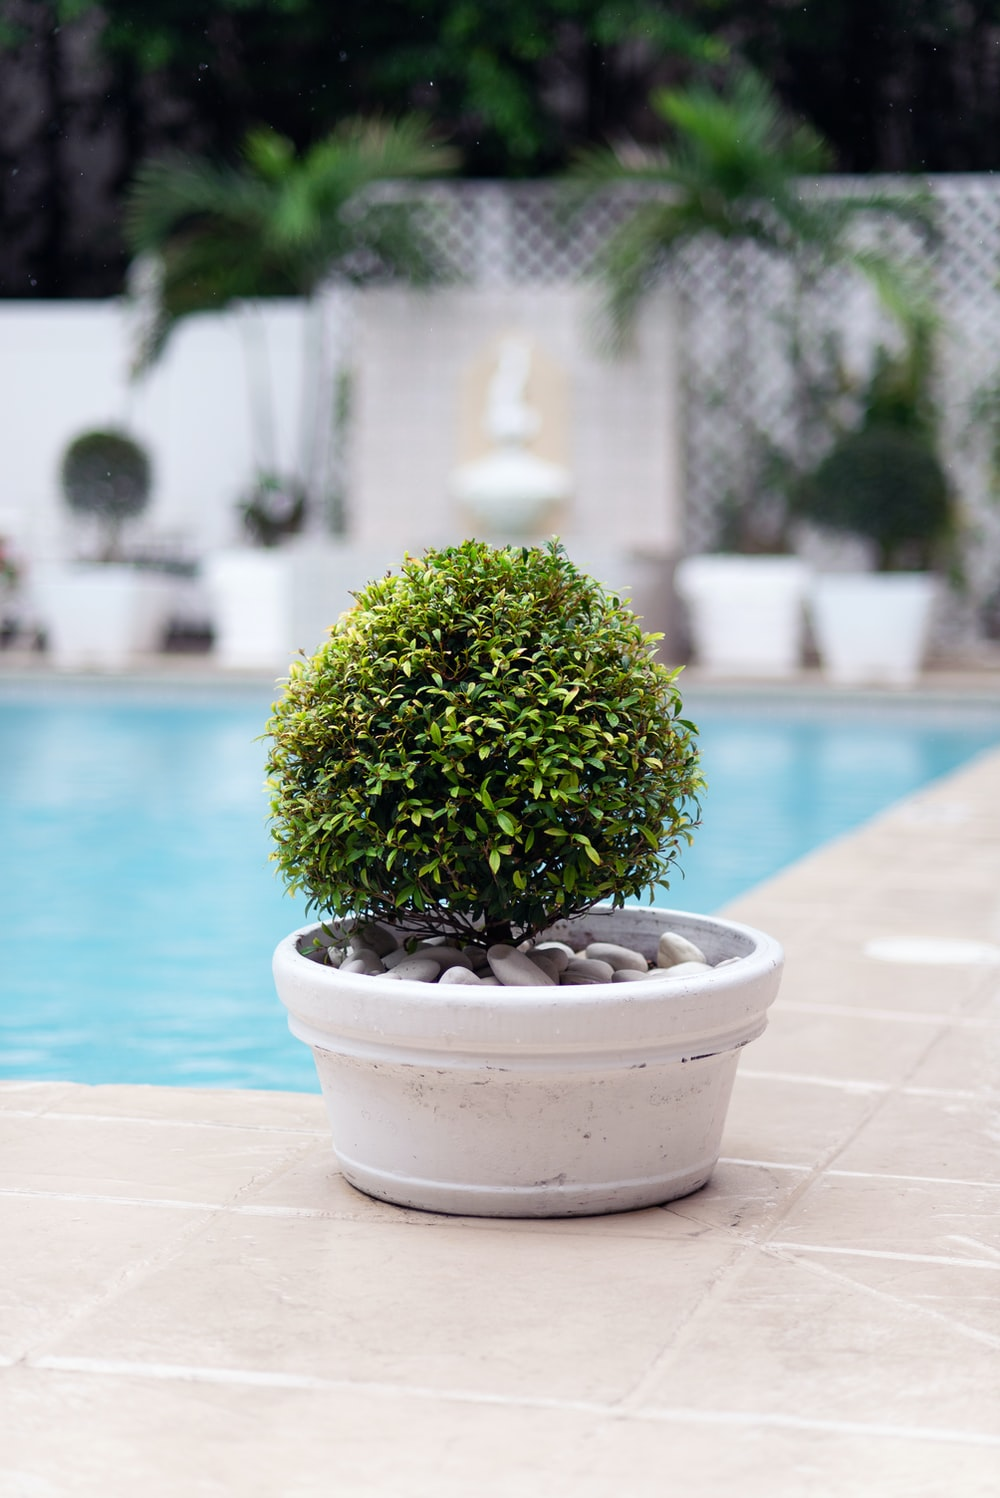 green plant on white ceramic pot